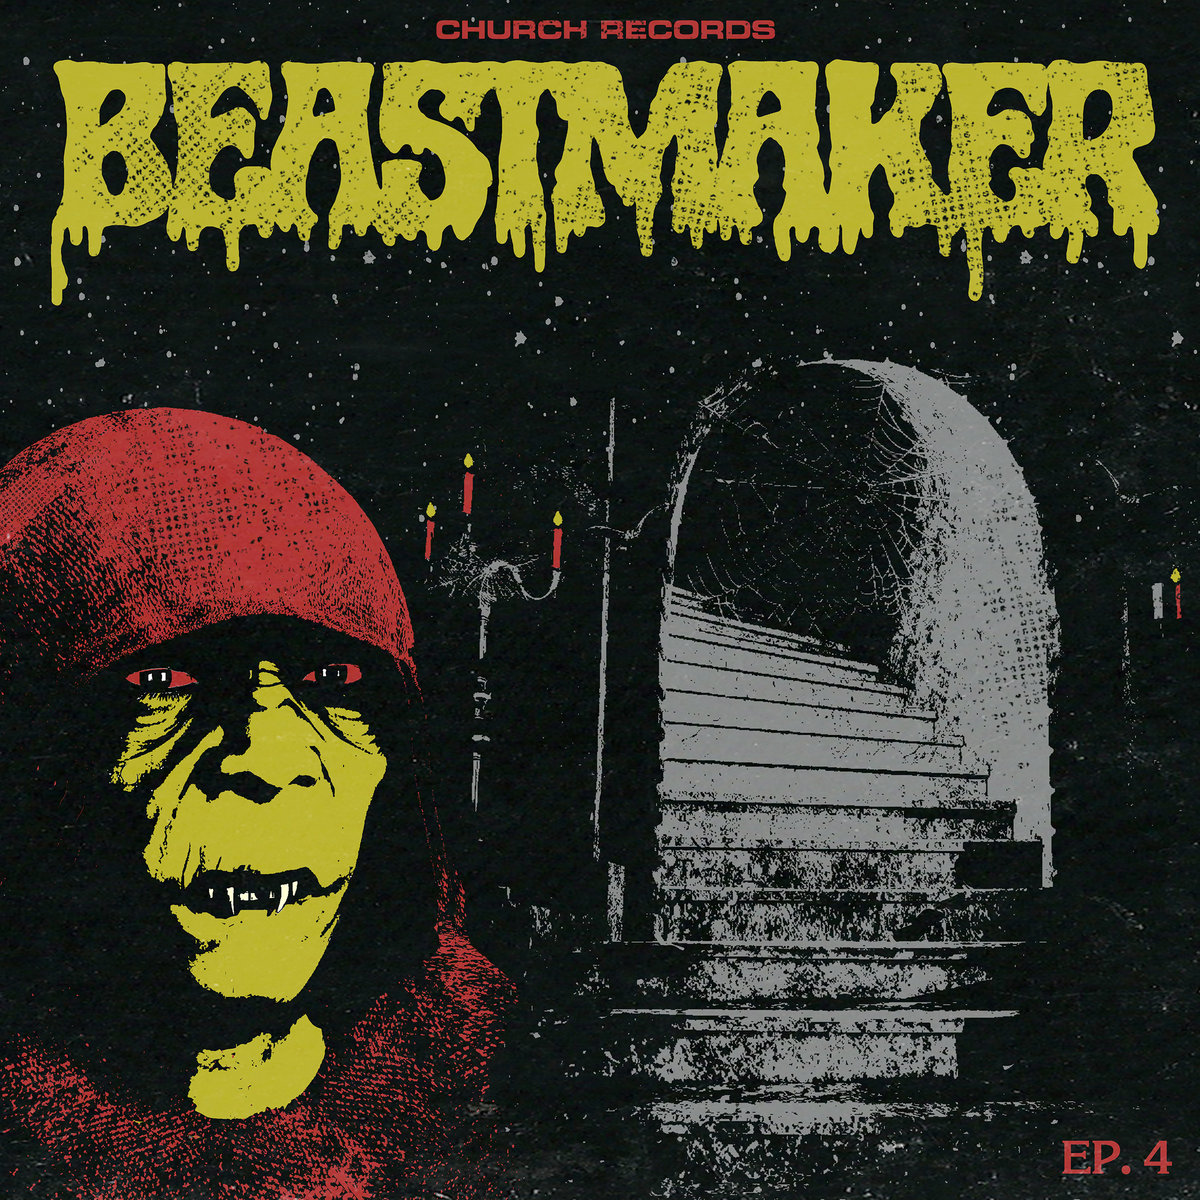 Beastmaker EP-4 Eye To Eye Skyclad Rippers Blade Reborn Again